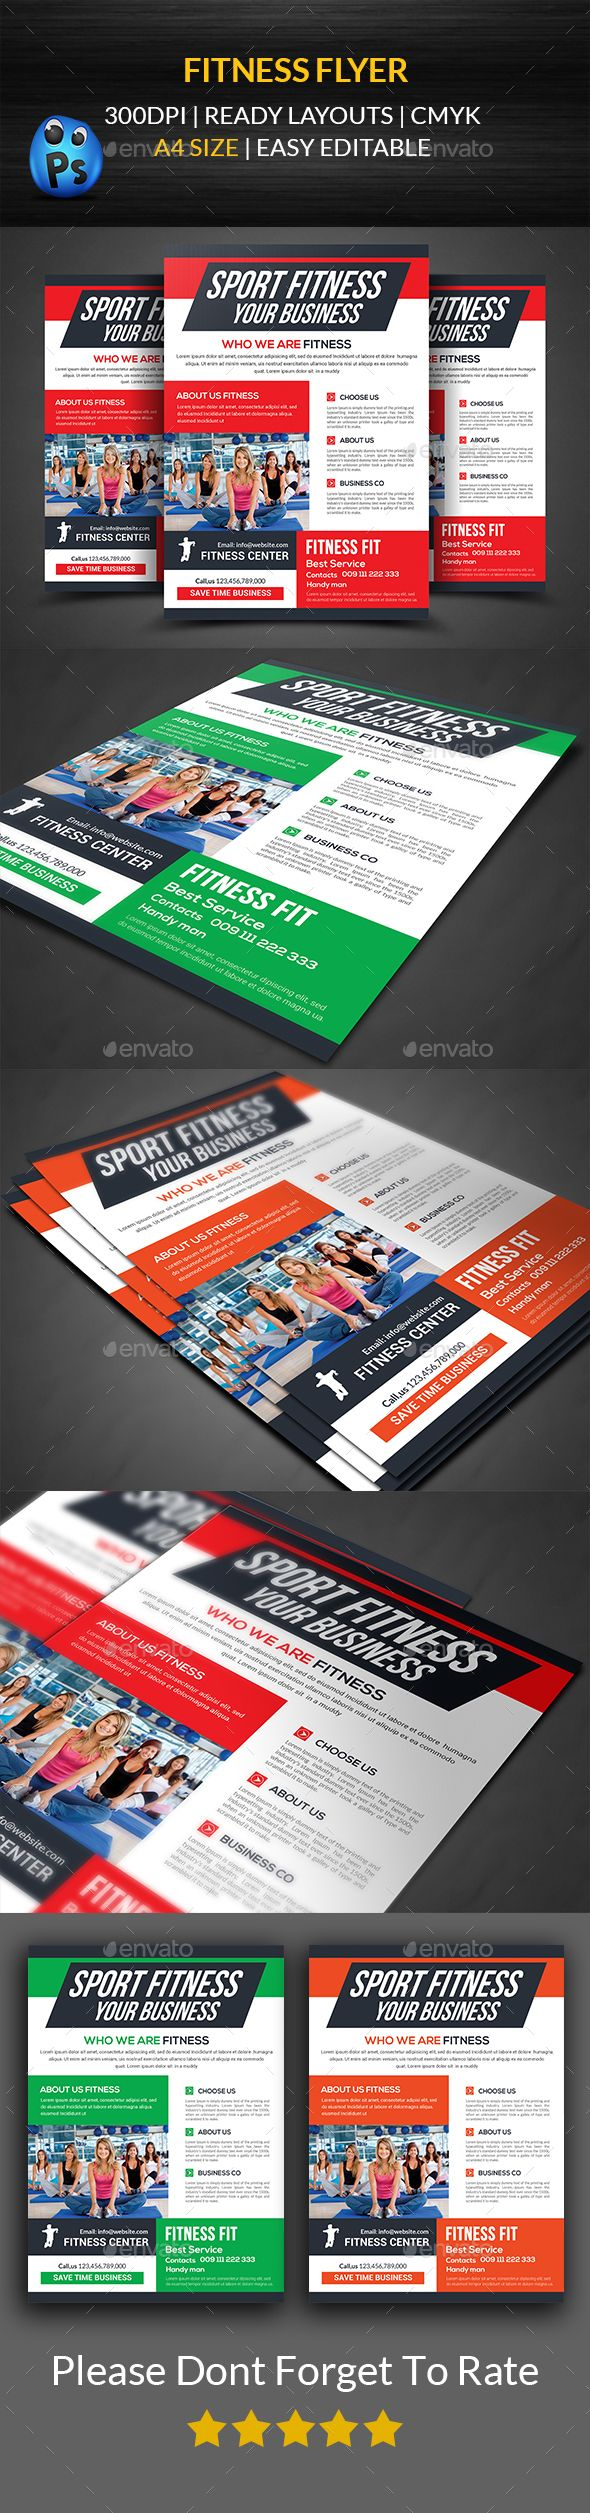 Healthcare-Advertising-Fitness-Flyer-Template-PSD-design-Download-graphicriver.net Healthcare Advertising : Fitness Flyer Template PSD #design Download: graphicriver.net/...